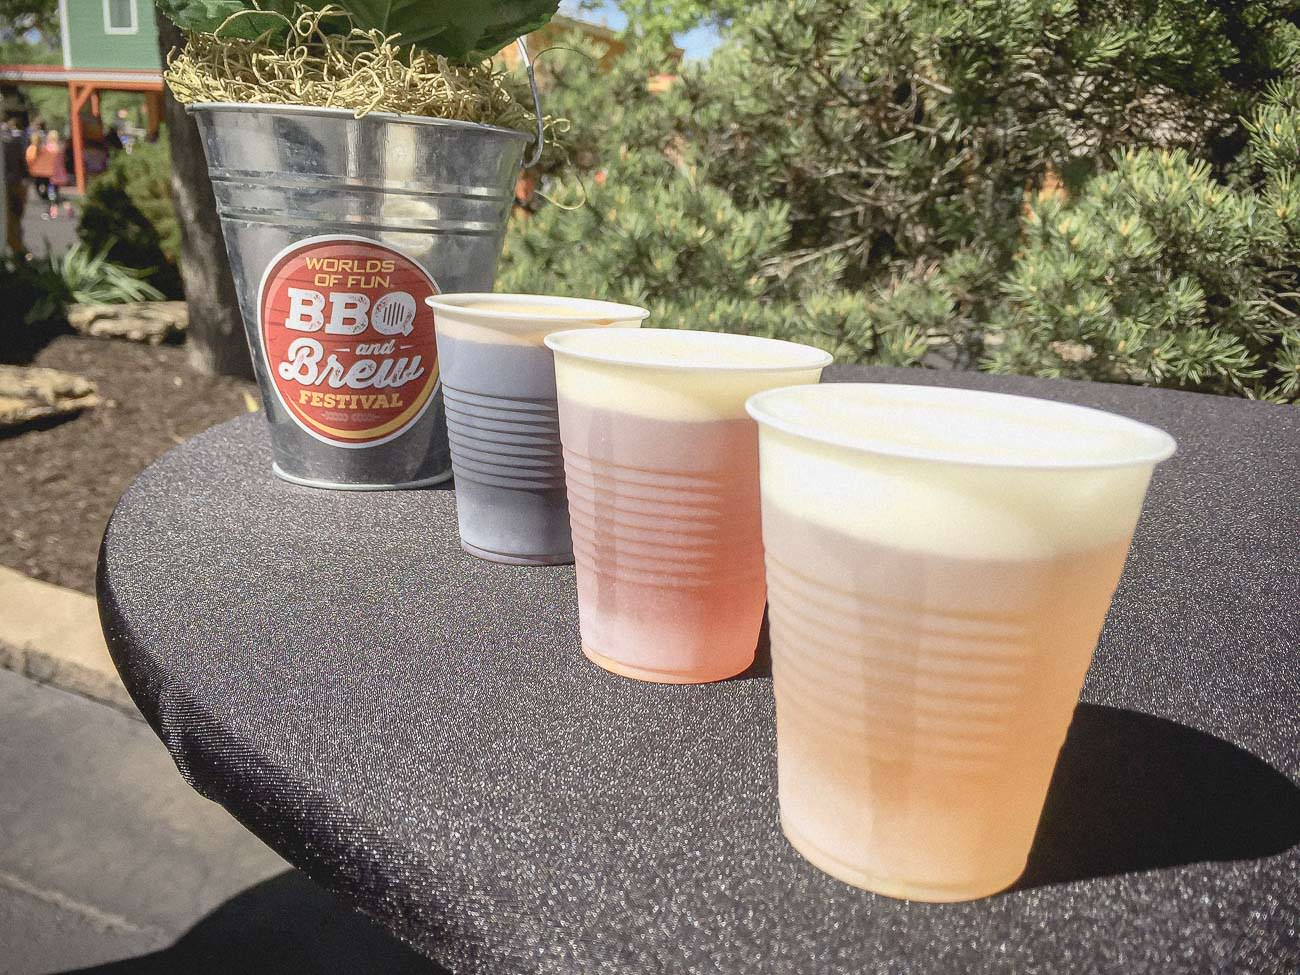 https://withsaltandwit.com/worlds-of-fun-hosts-all-american-bbq-brew-festival/